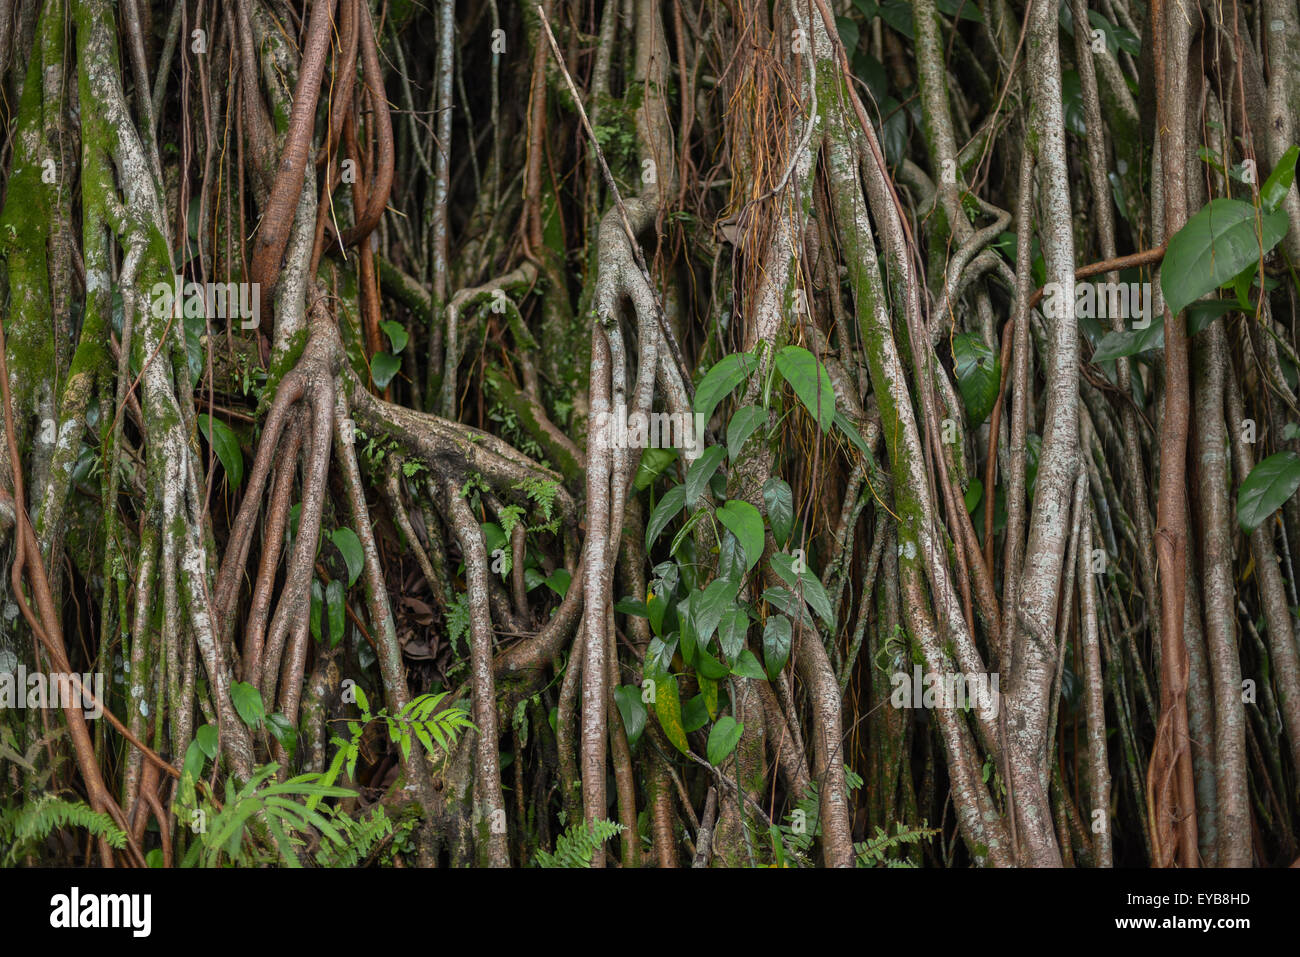 Giant roots of Pandanus trees. - Stock Image